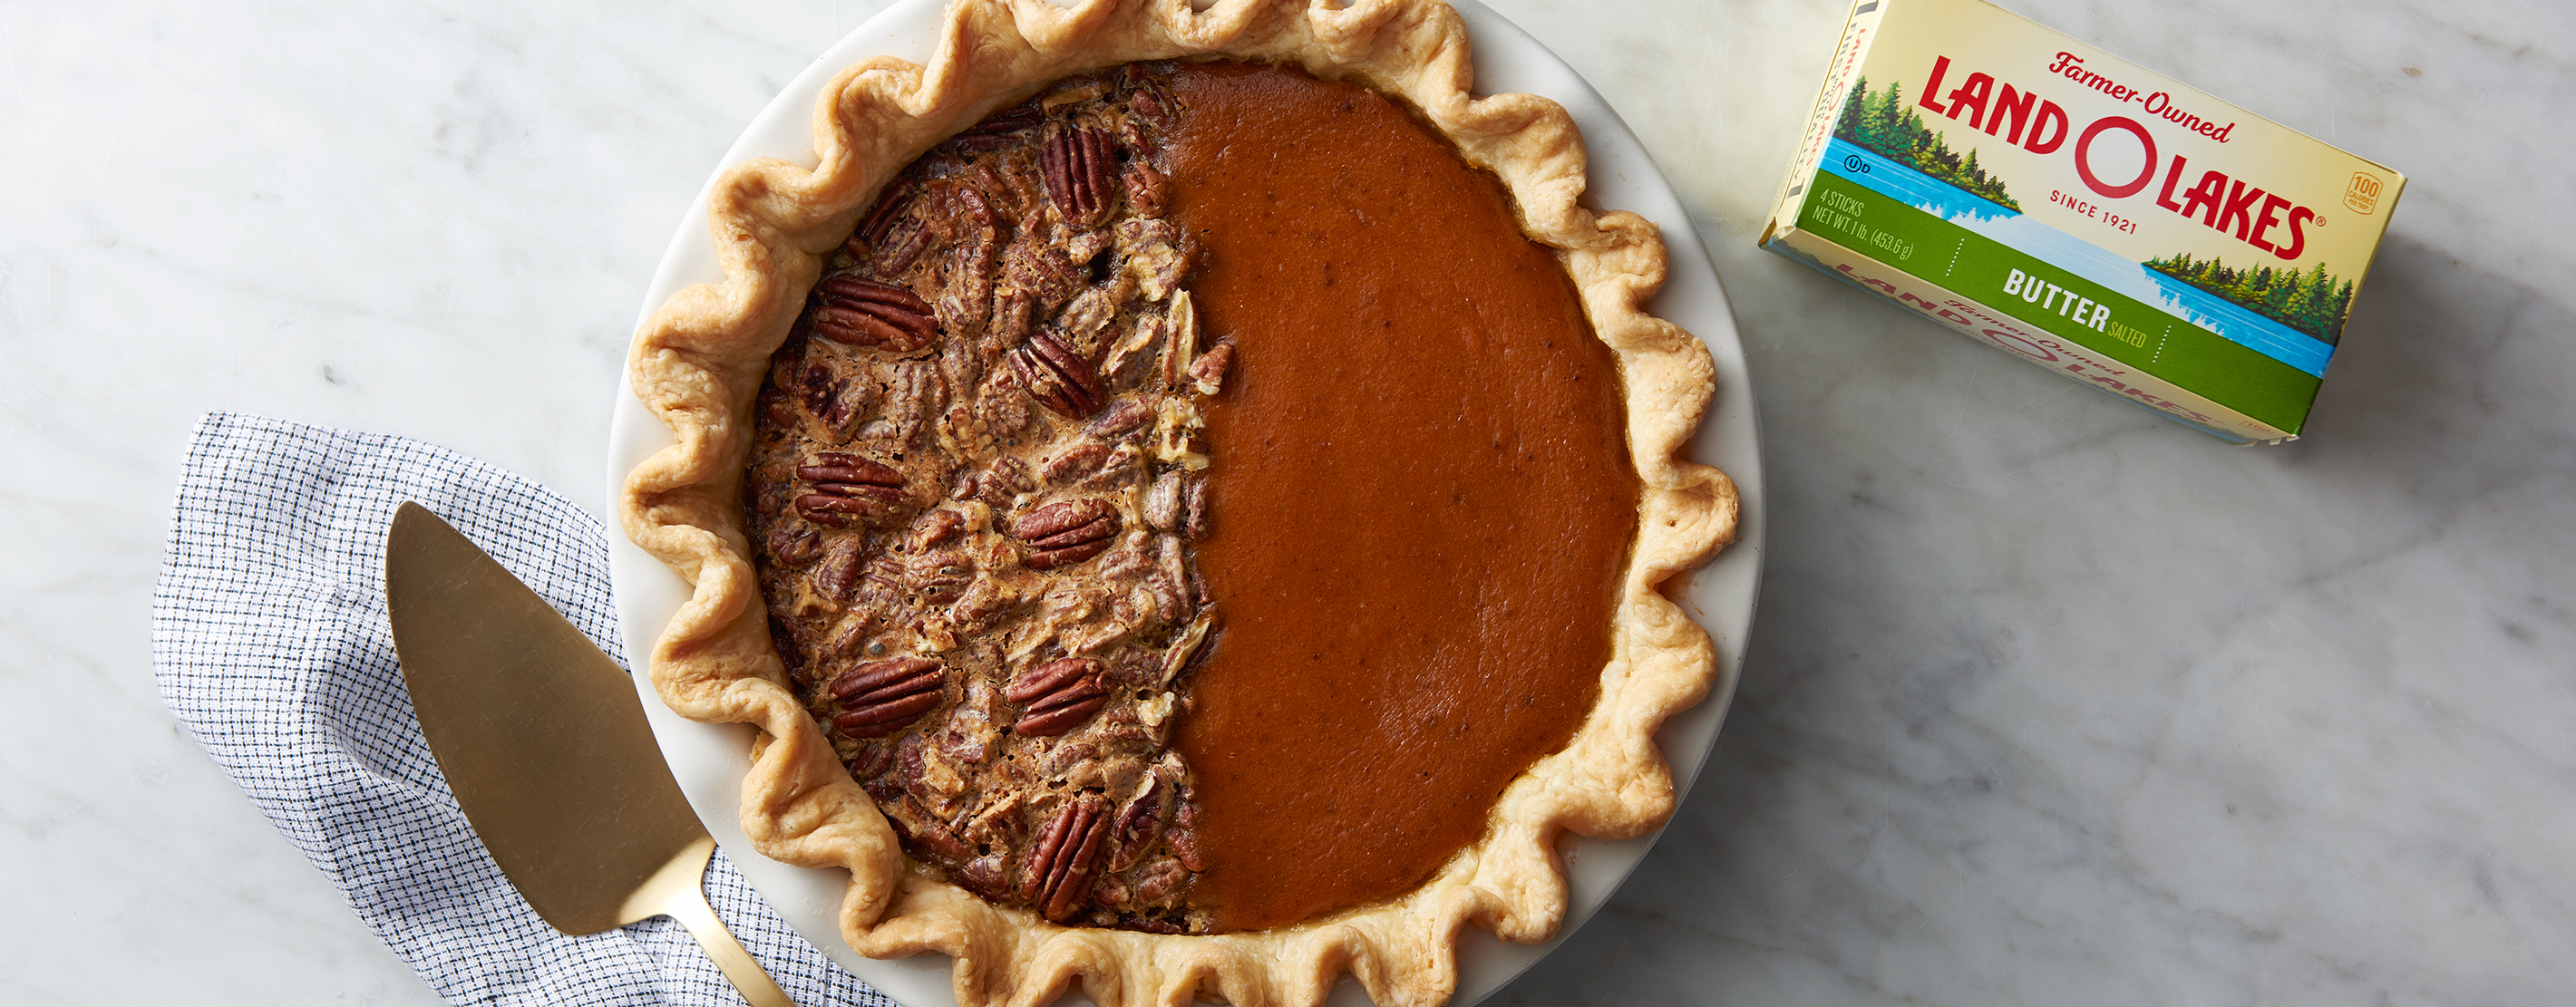 Image Of A Pie That is Half Pumpkin And Half Pecan